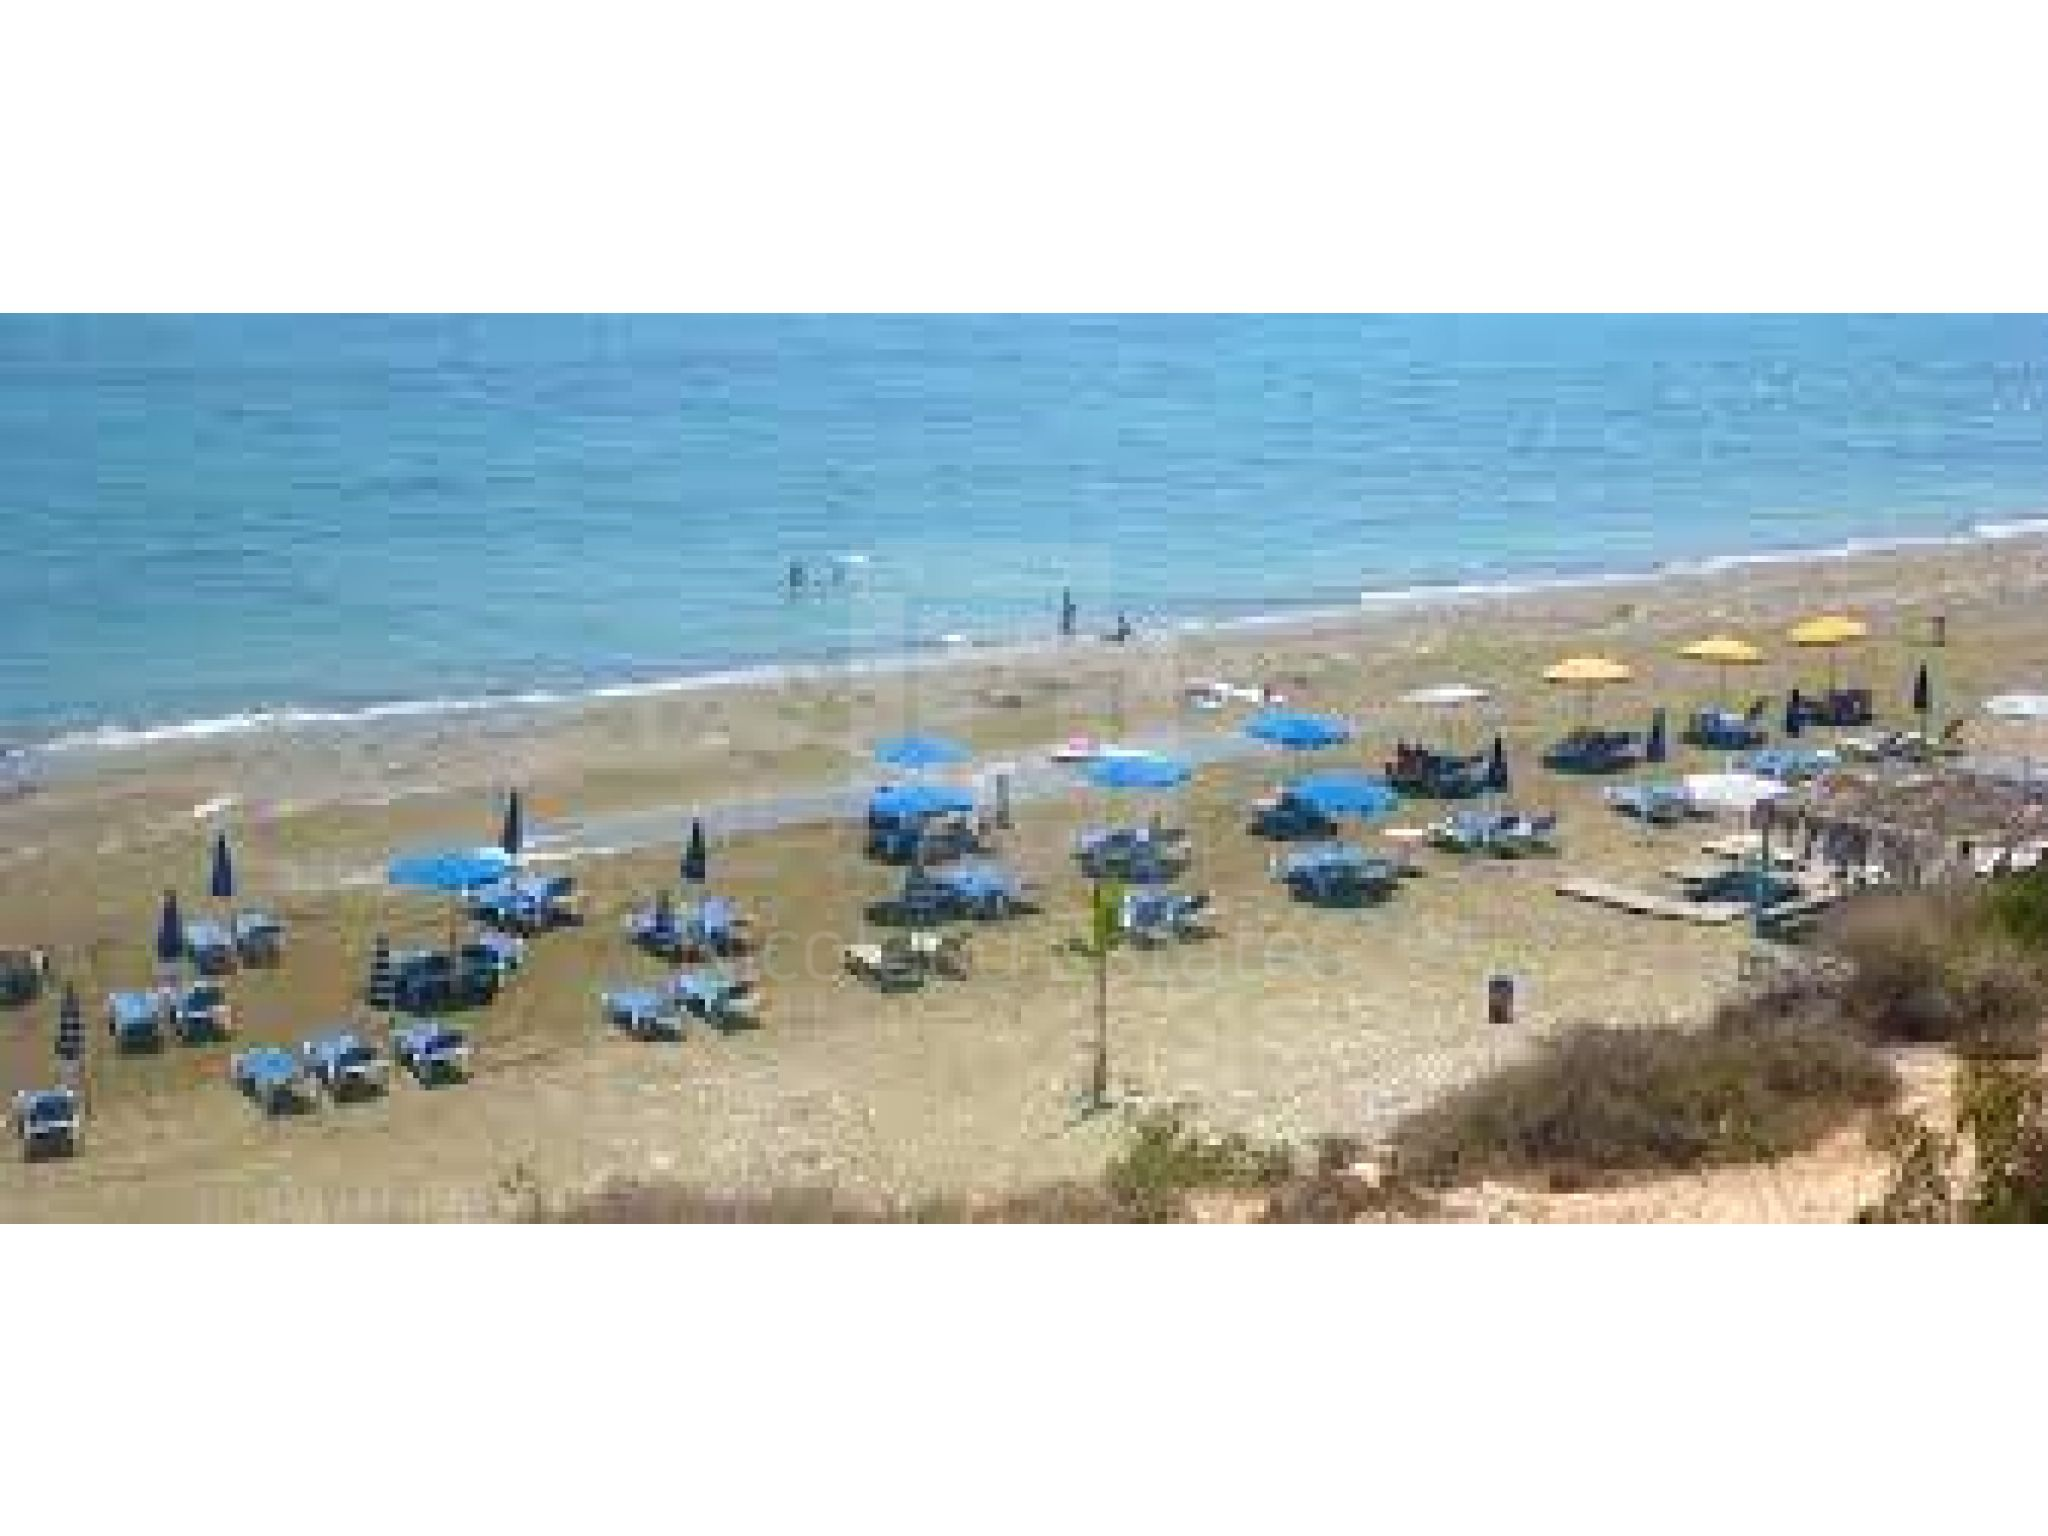 Residential land for sale in Pervolia area of Larnaca 200 metres from the sea